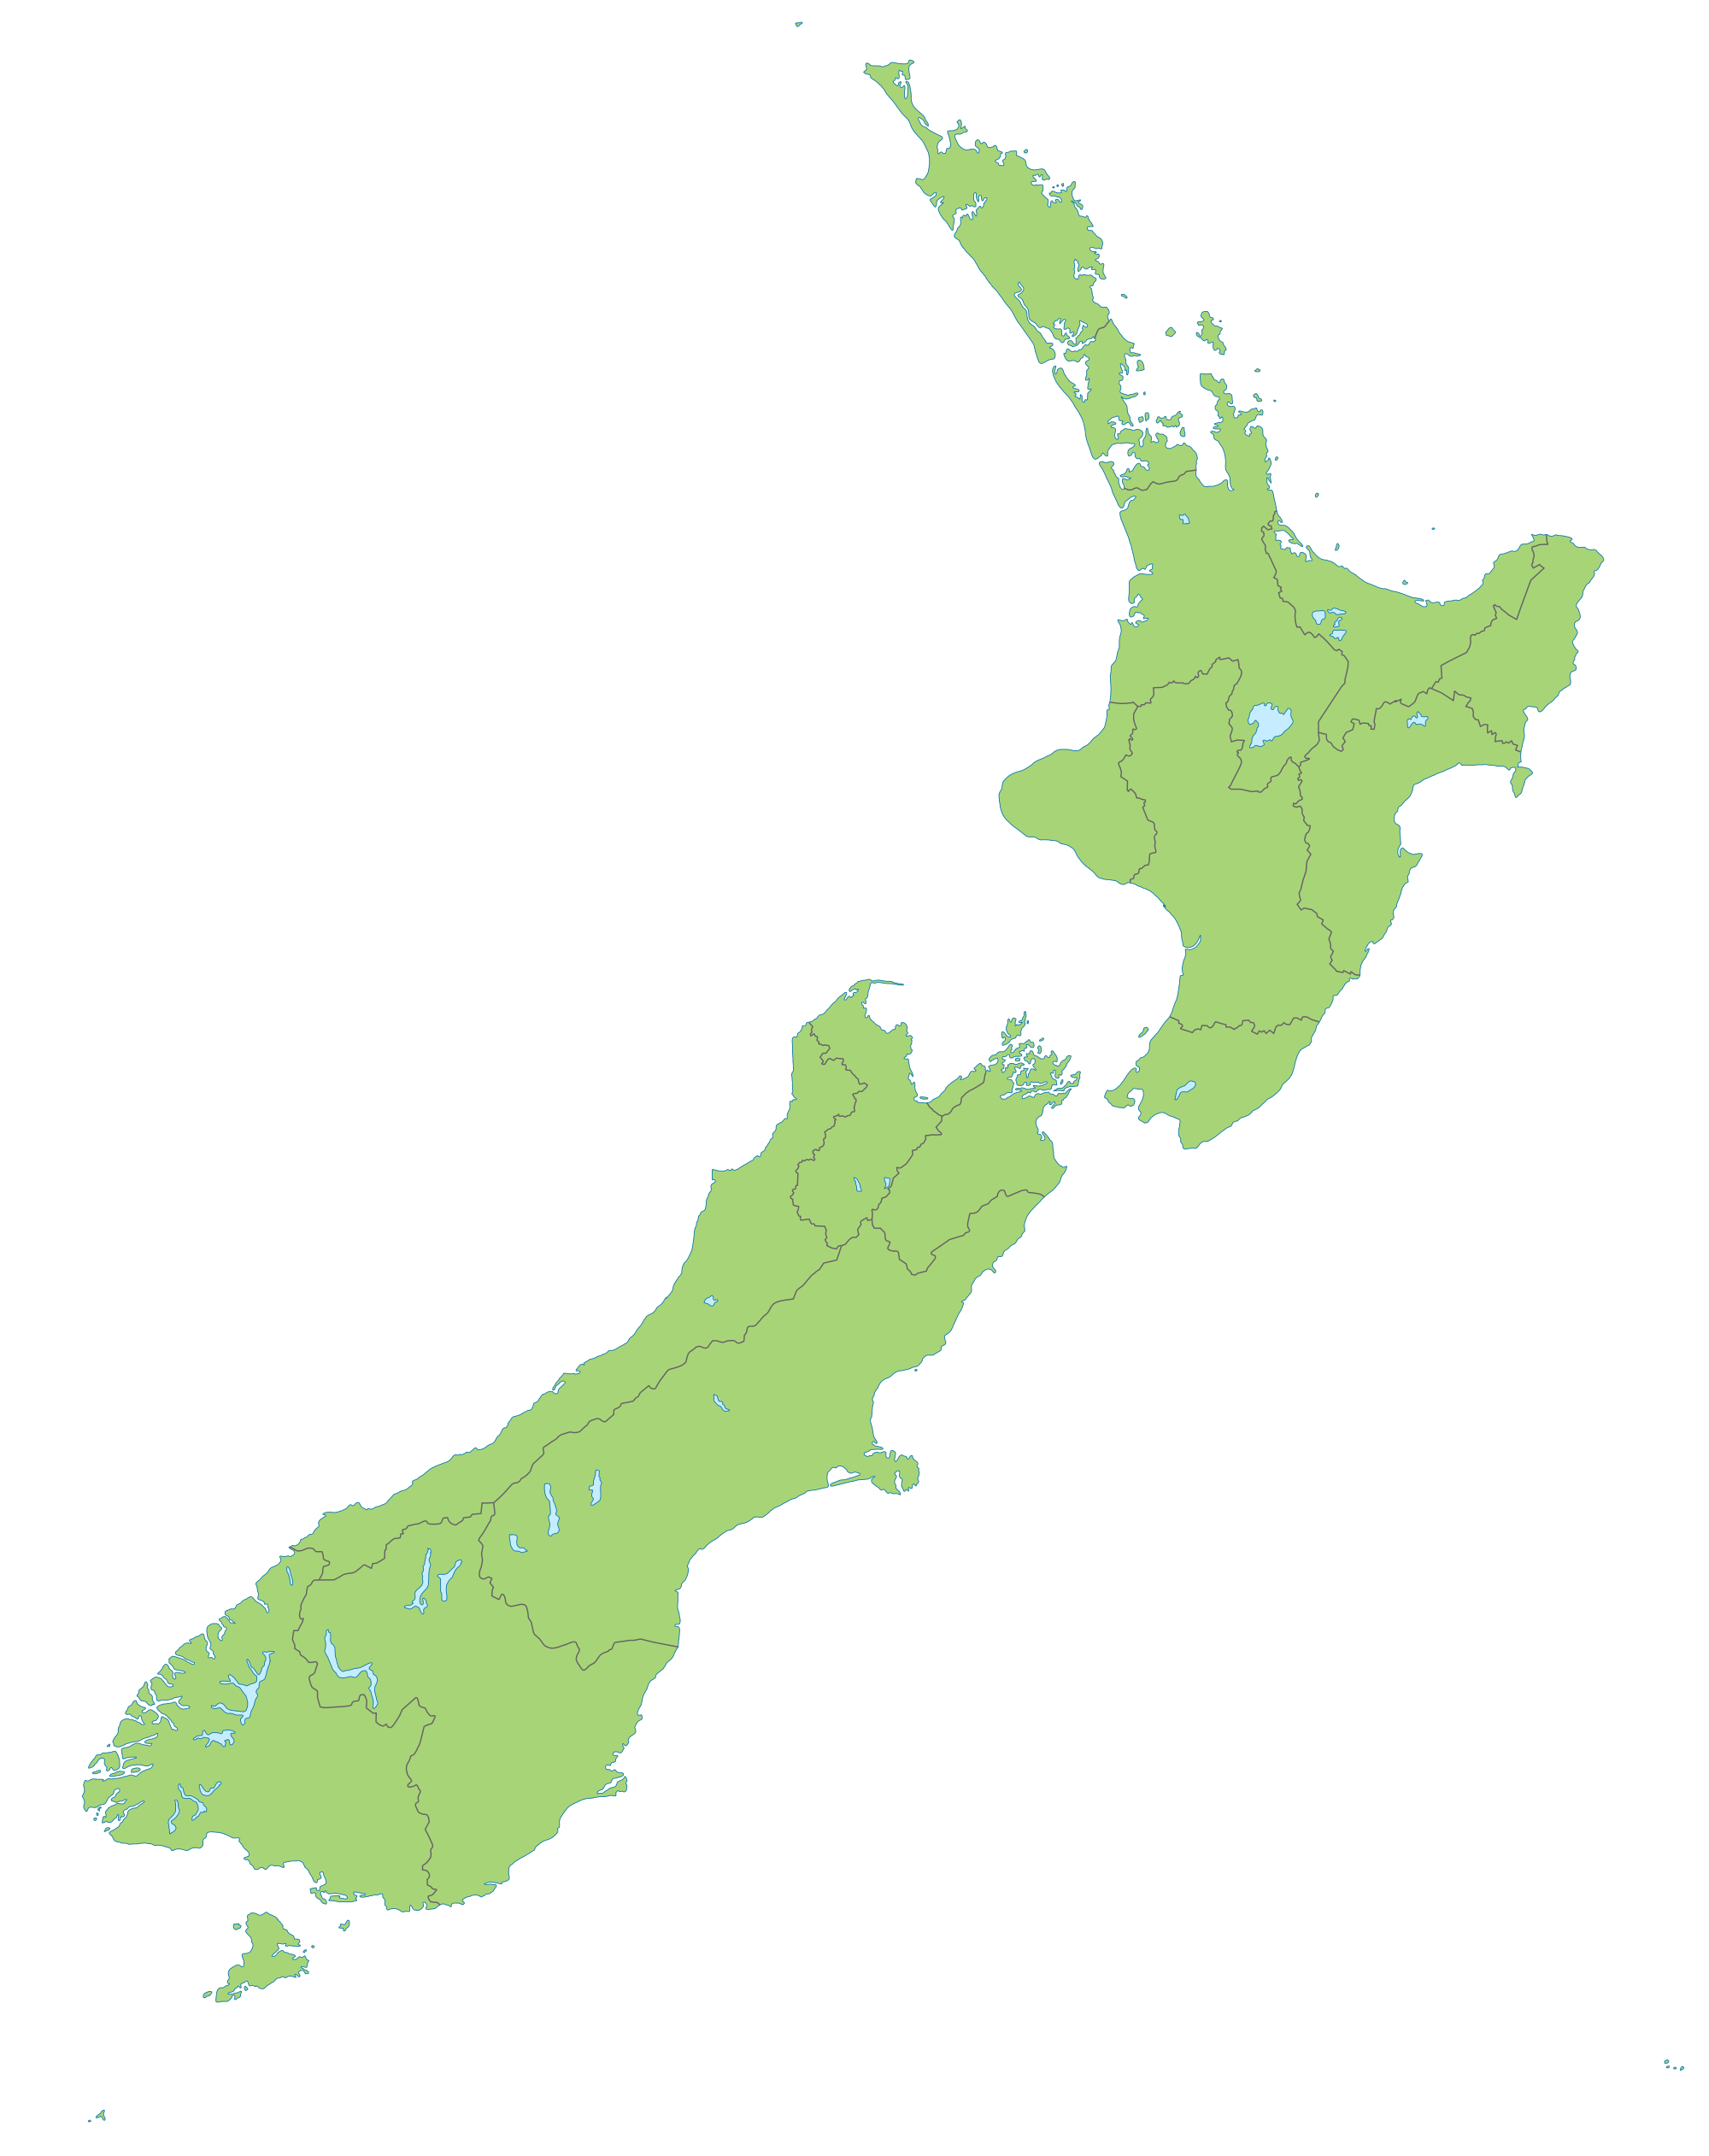 New zealand map png. File location transparent svg